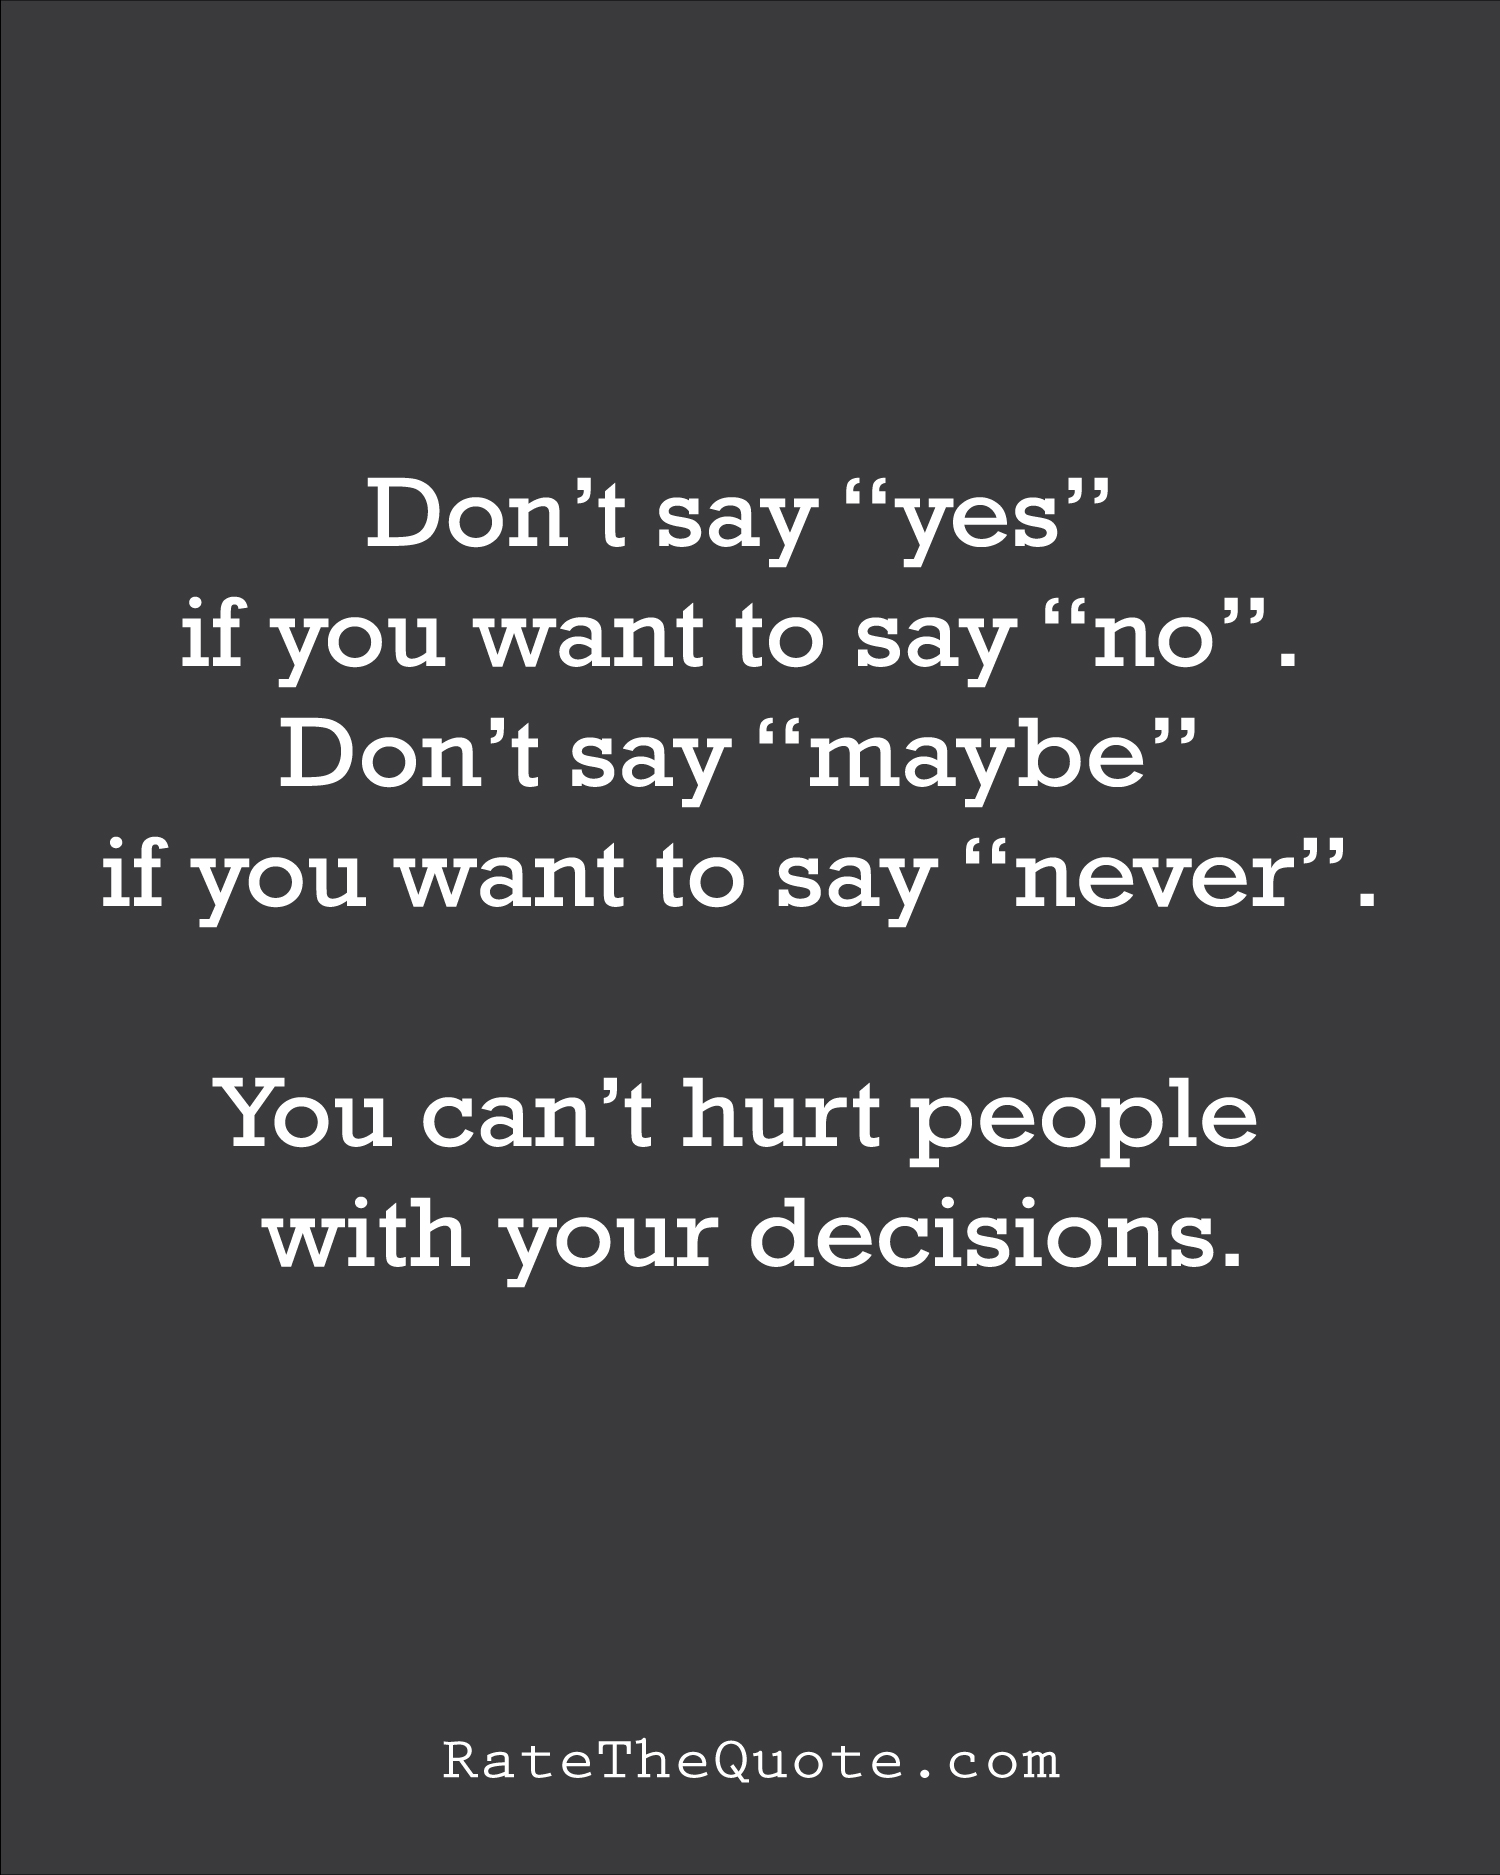 """Quote Don't say """"yes"""" if you want to say """"no"""". Don't say """"maybe"""" if you want to say """"never"""". You can't hurt people with your decisions."""